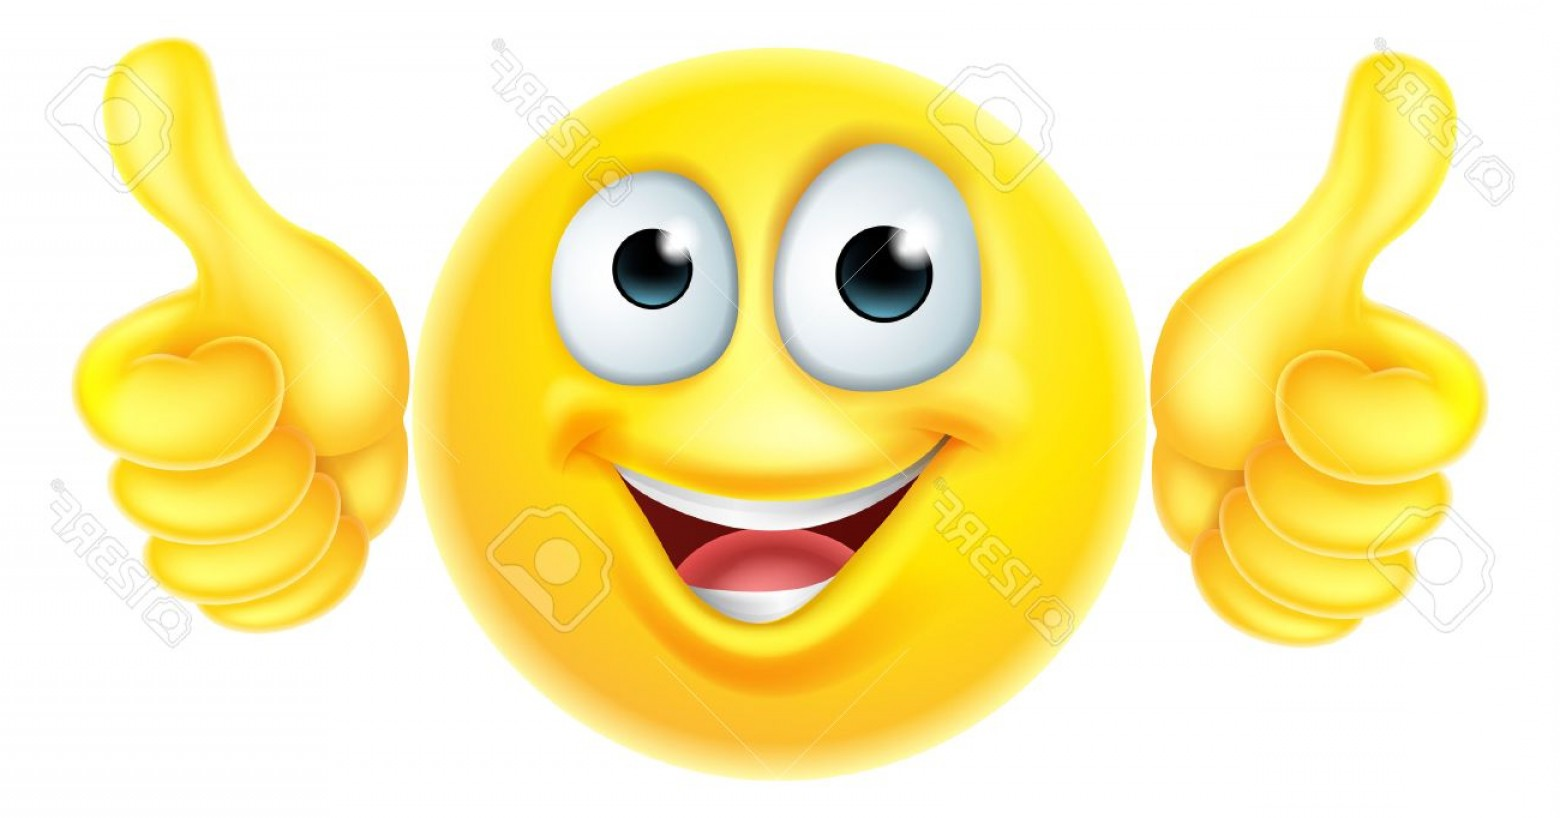 Excited Face Emoji Vector: Photostock Vector A Cartoon Emoji Emoticon Icon Character Looking Very Happy With His Thumbs Up He Likes It